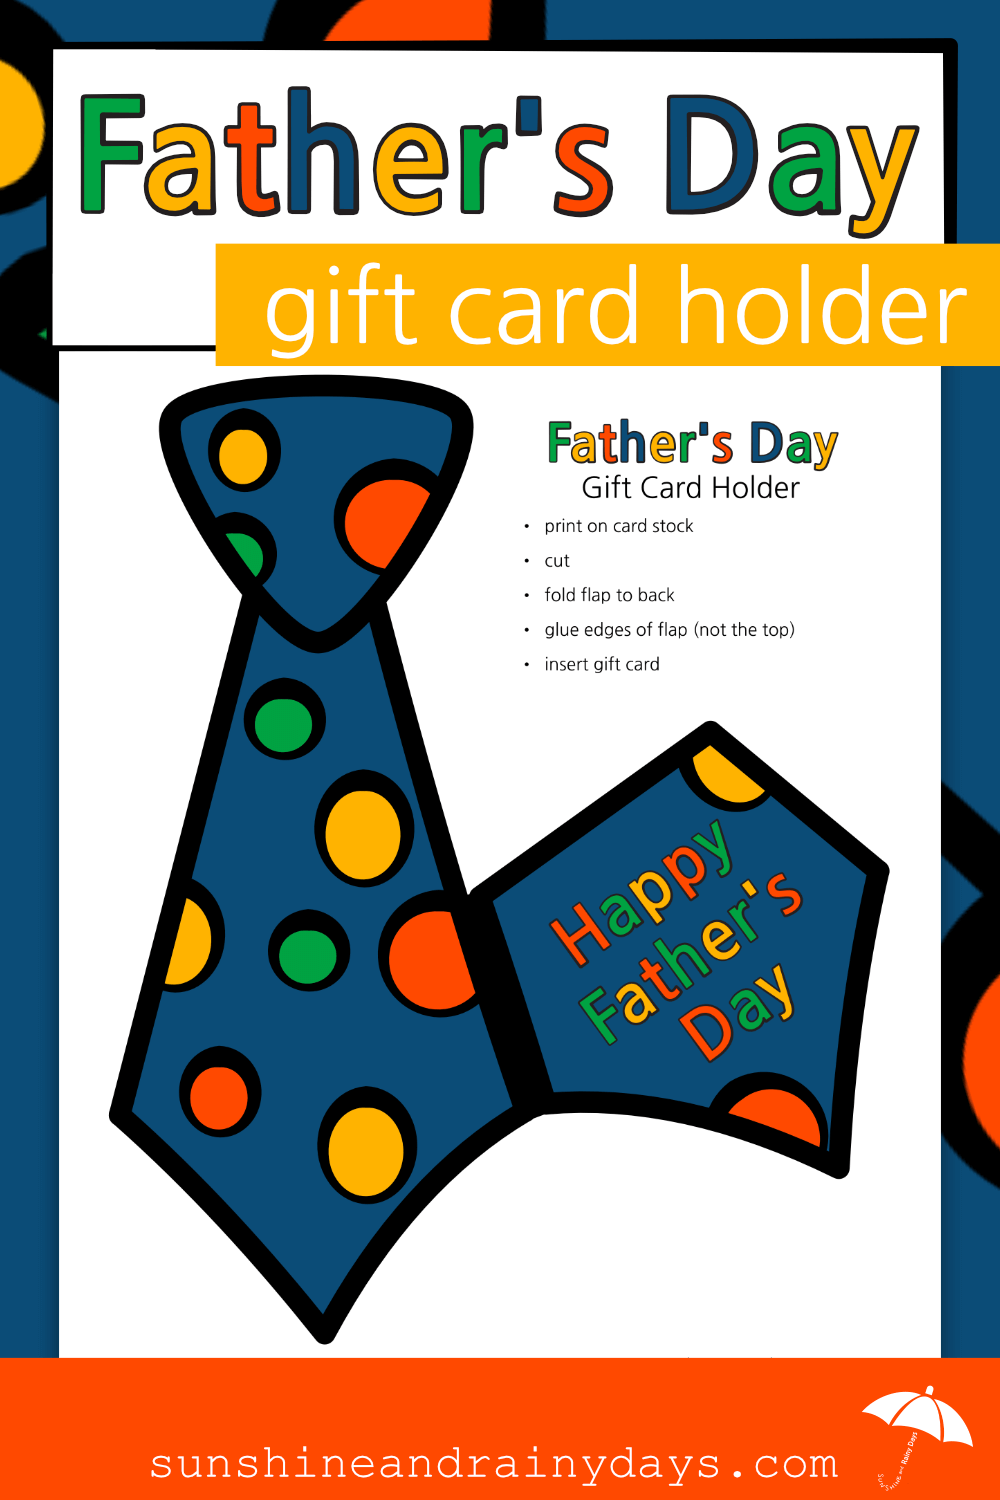 Father's Day Gift Card Holder (PDF)